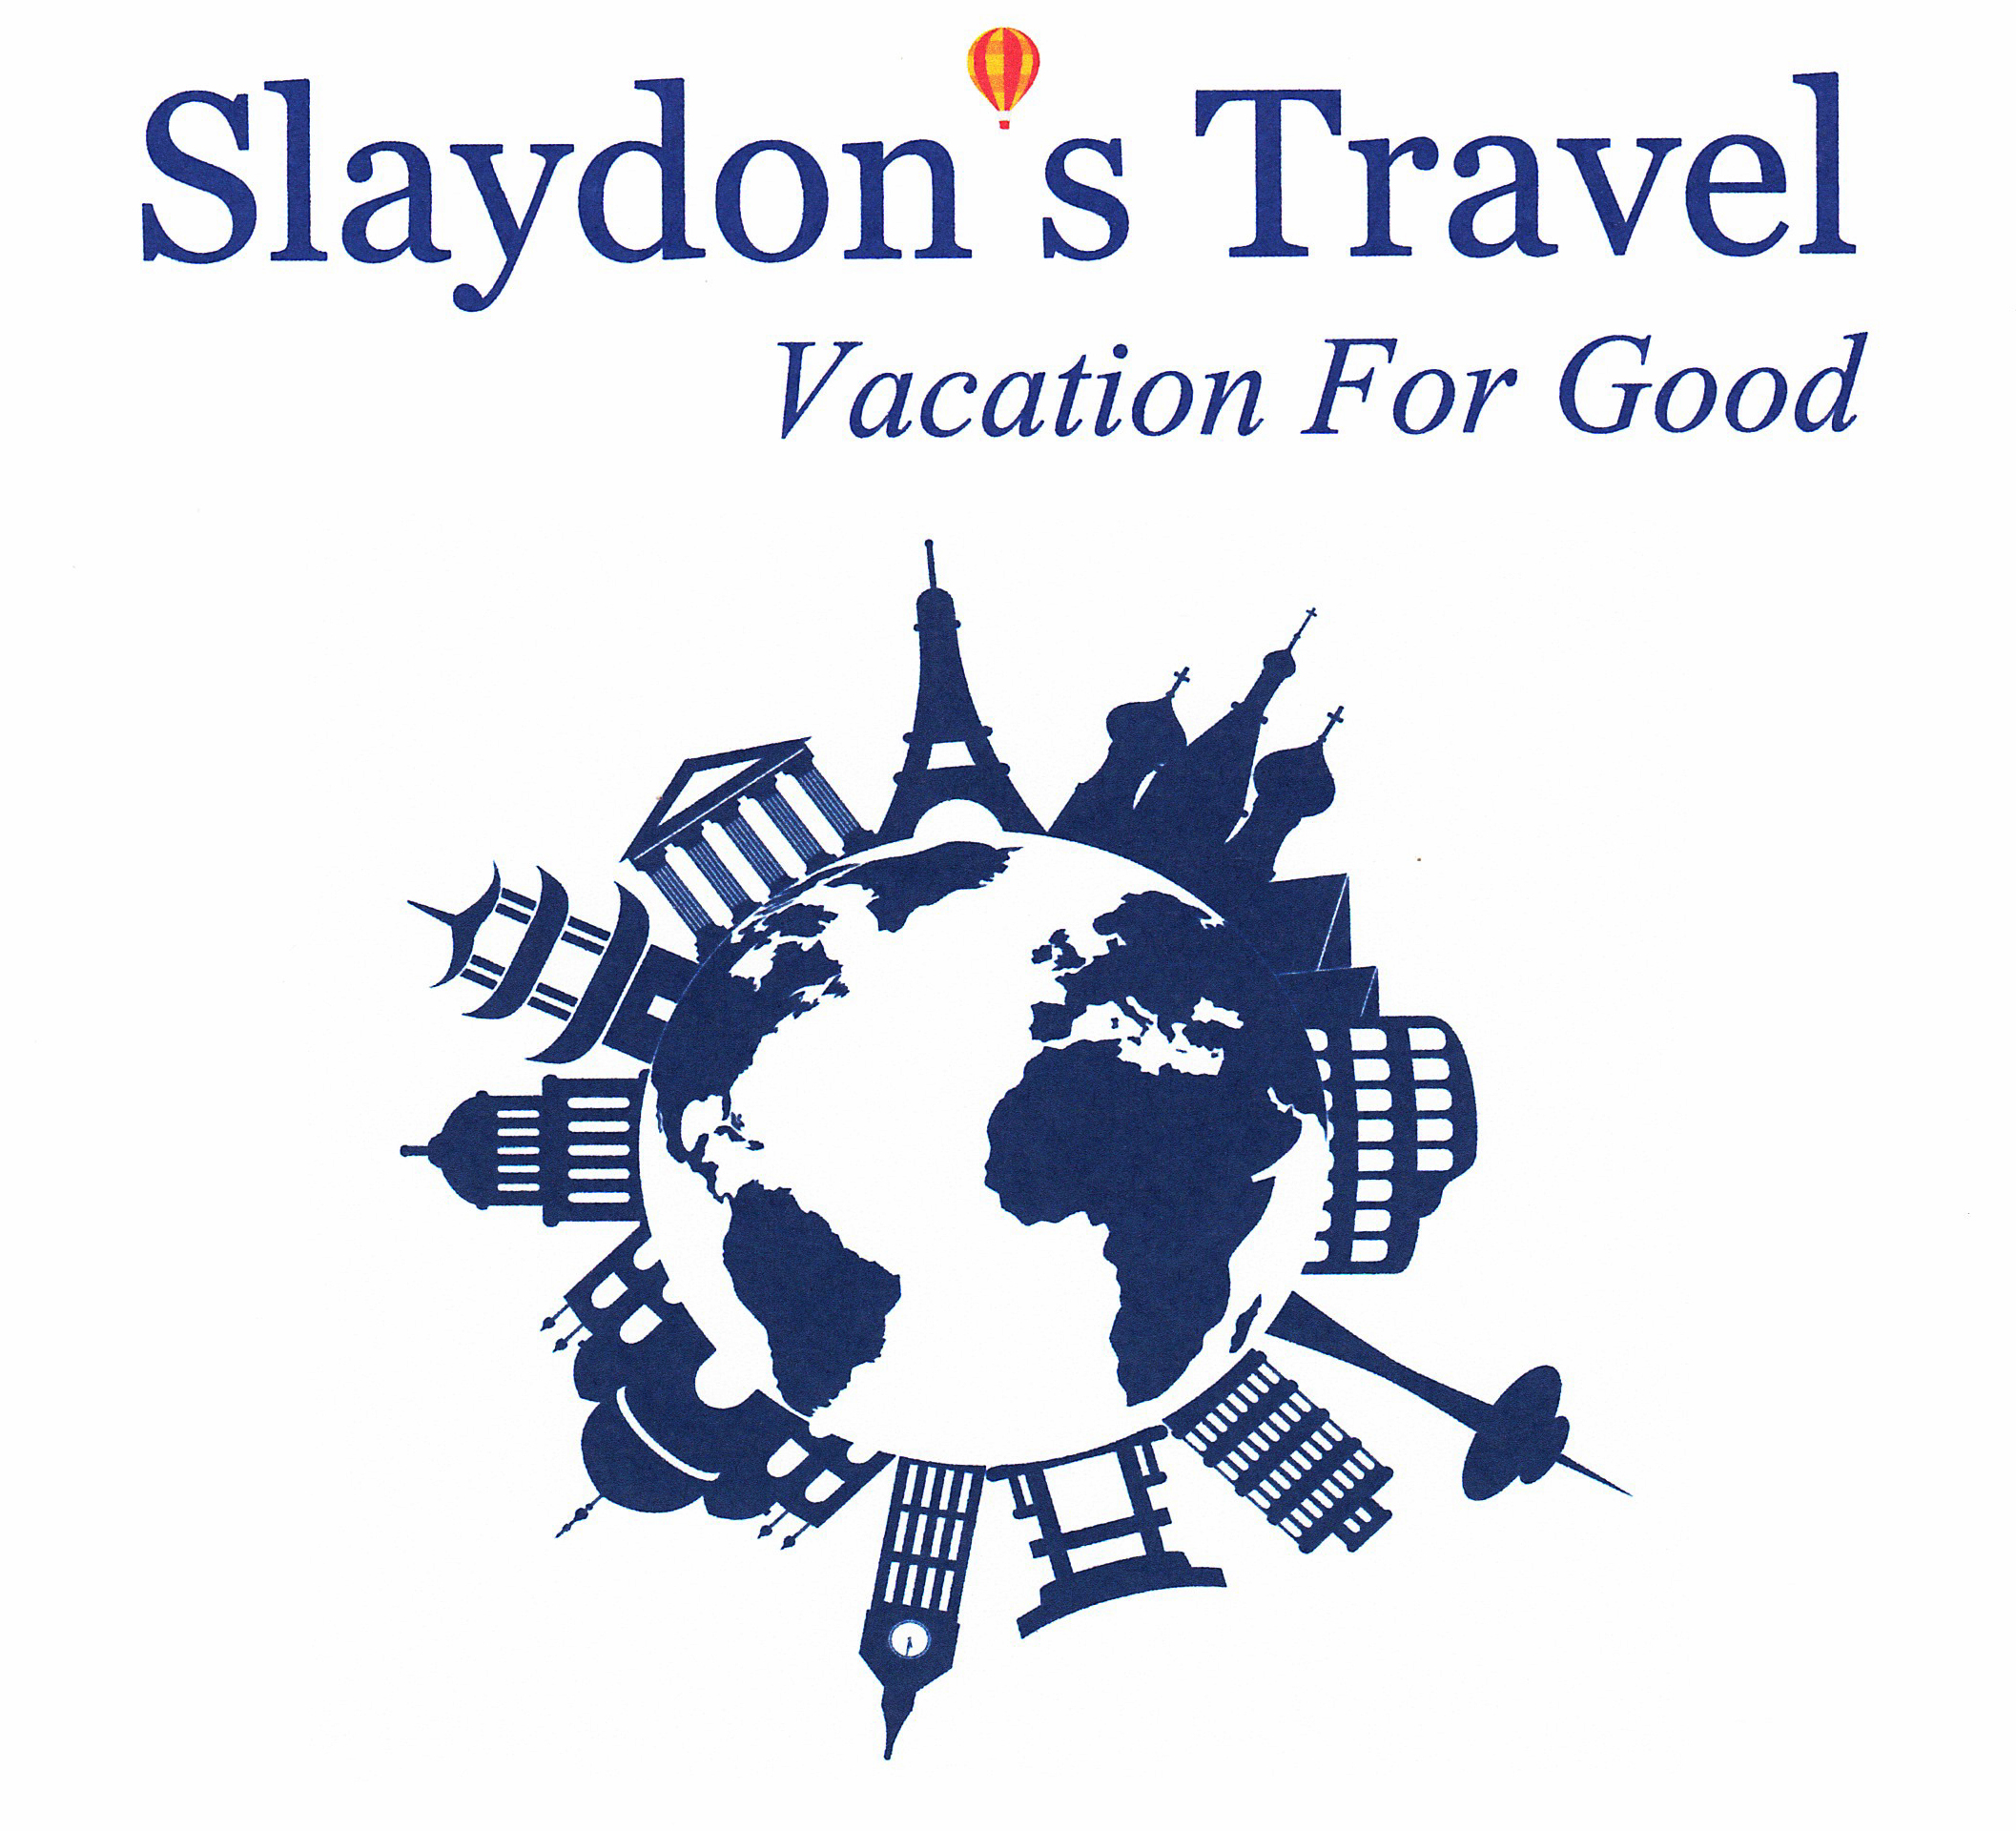 SlaydonsTravel